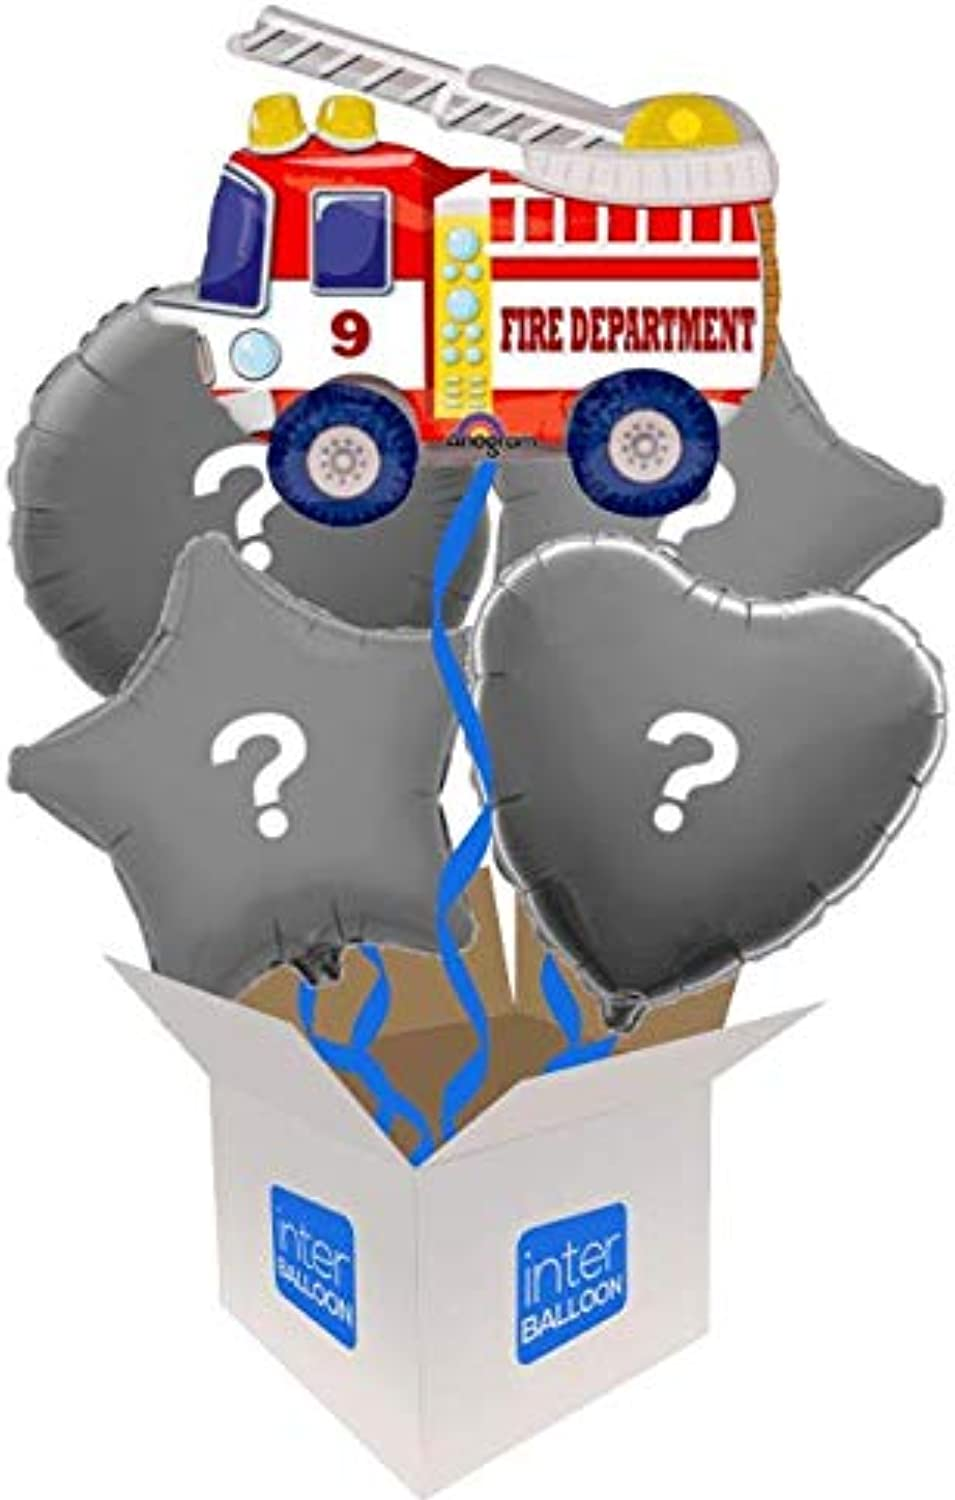 InterBalloon Helium Inflated 24  Fire Truck (Air walker) Balloon Delivered in a Box with 4 Extra Balloons of your choice